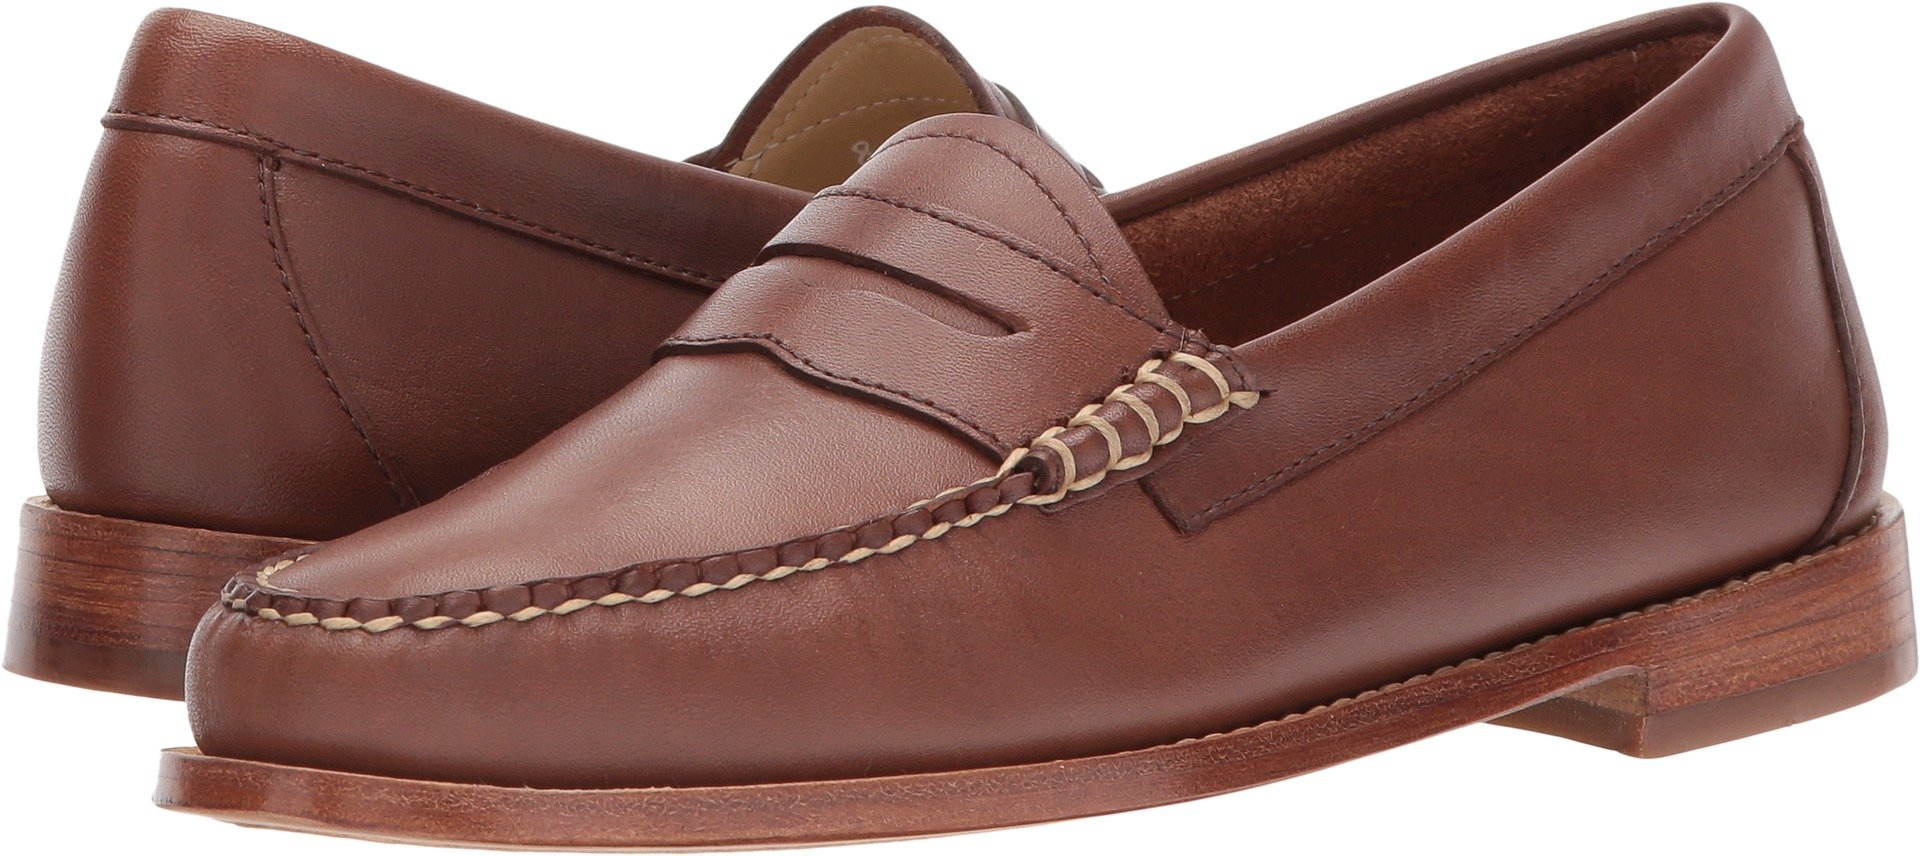 G.H. Bass & Co. Women's Whitney Penny Loafer, Brown 902, 8 M US